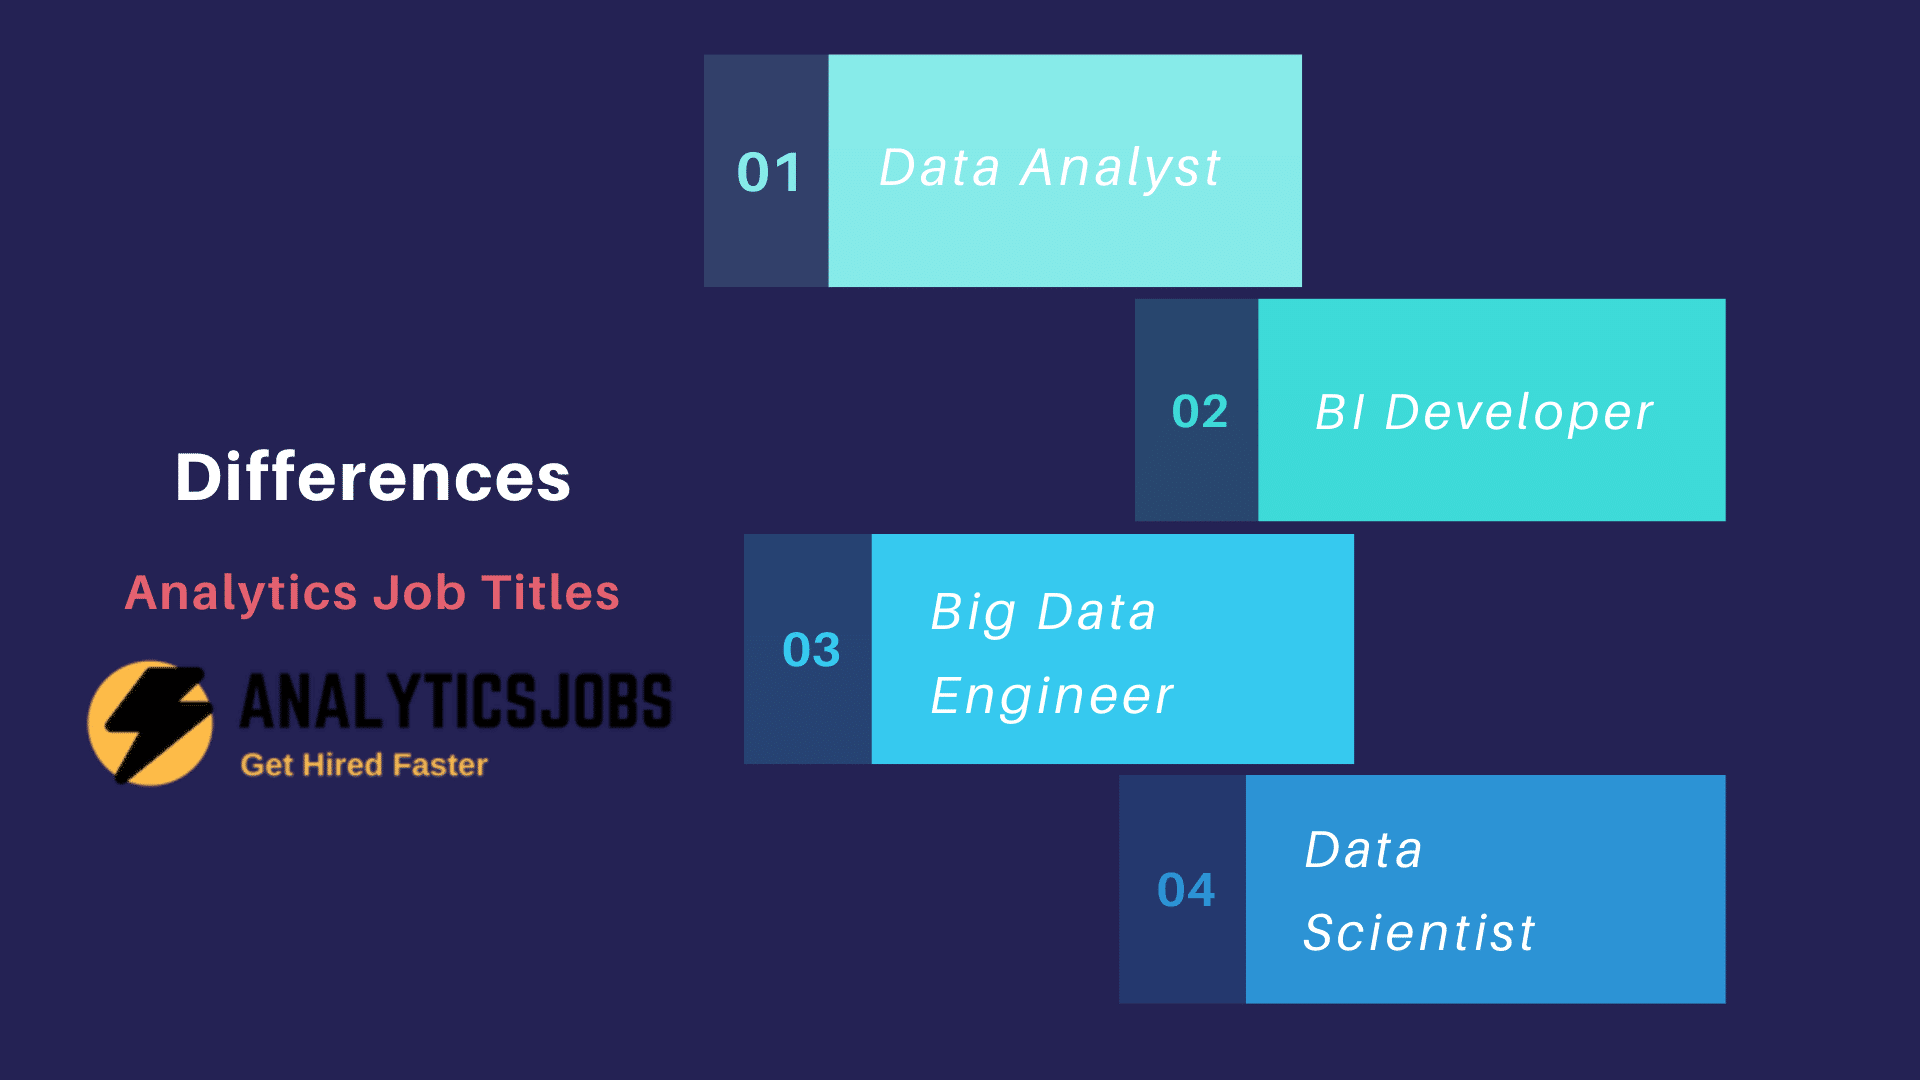 Different between Data Analysts vs. BI vs. Data Analyst vs. Big Data Engineer